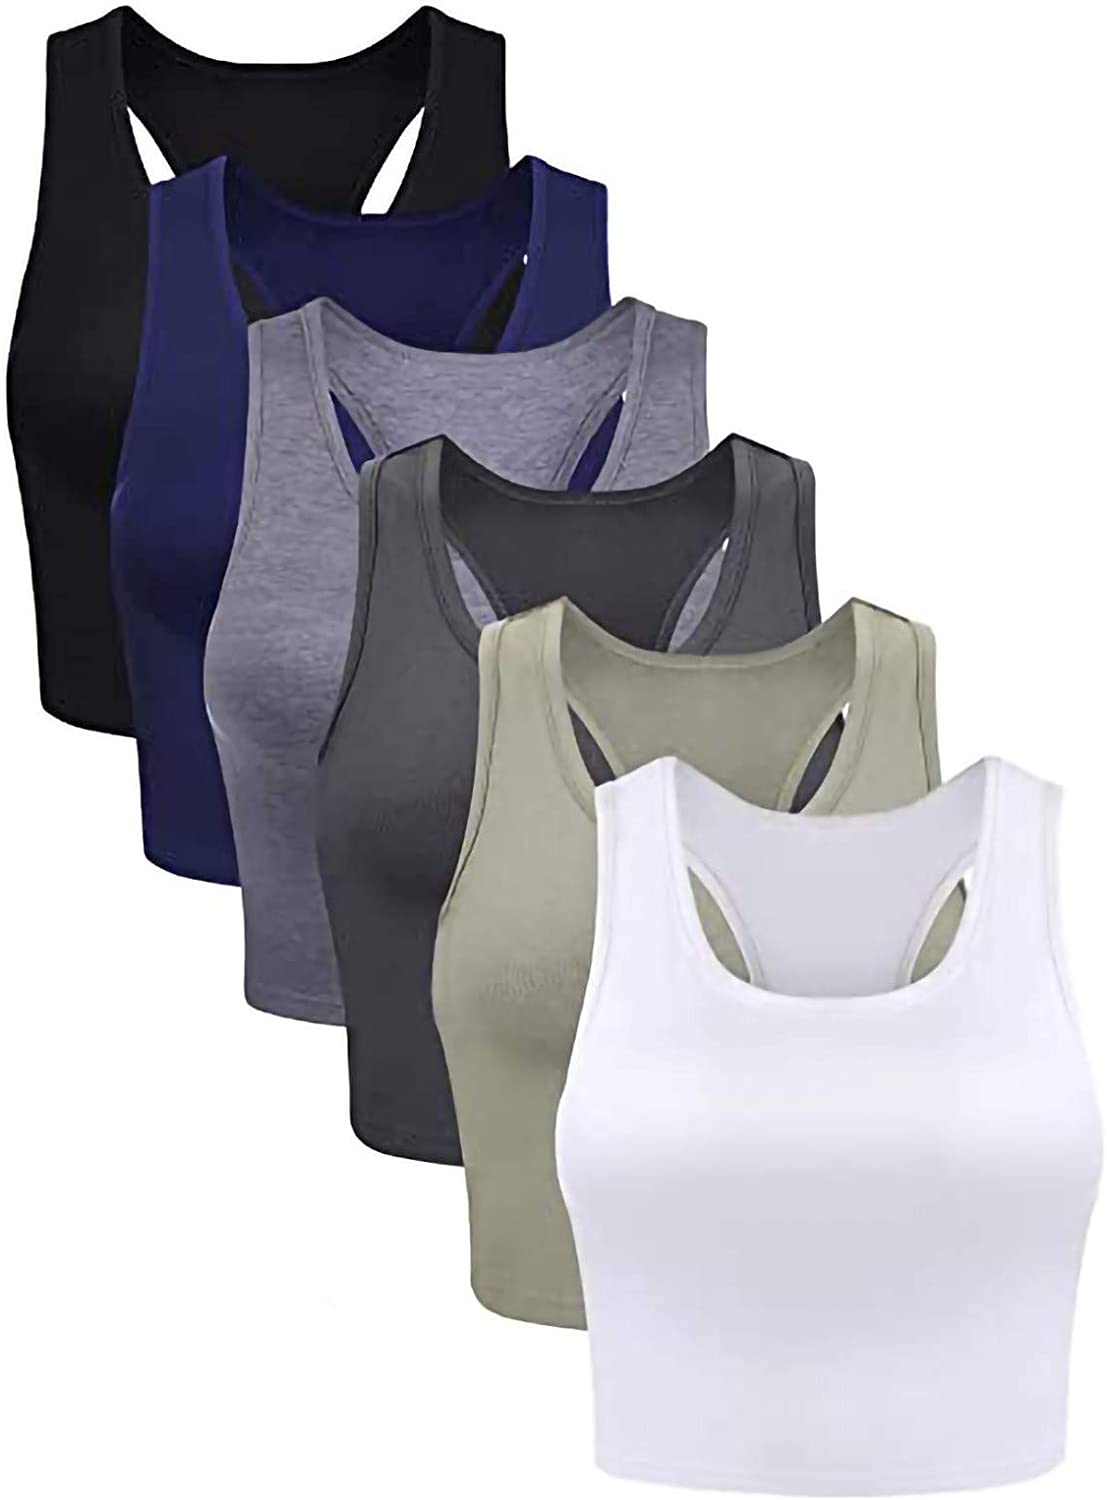 Lucksoon Women's Tops 6 Pieces Basic Solid Color Vest Sports Crop Daily Wearing